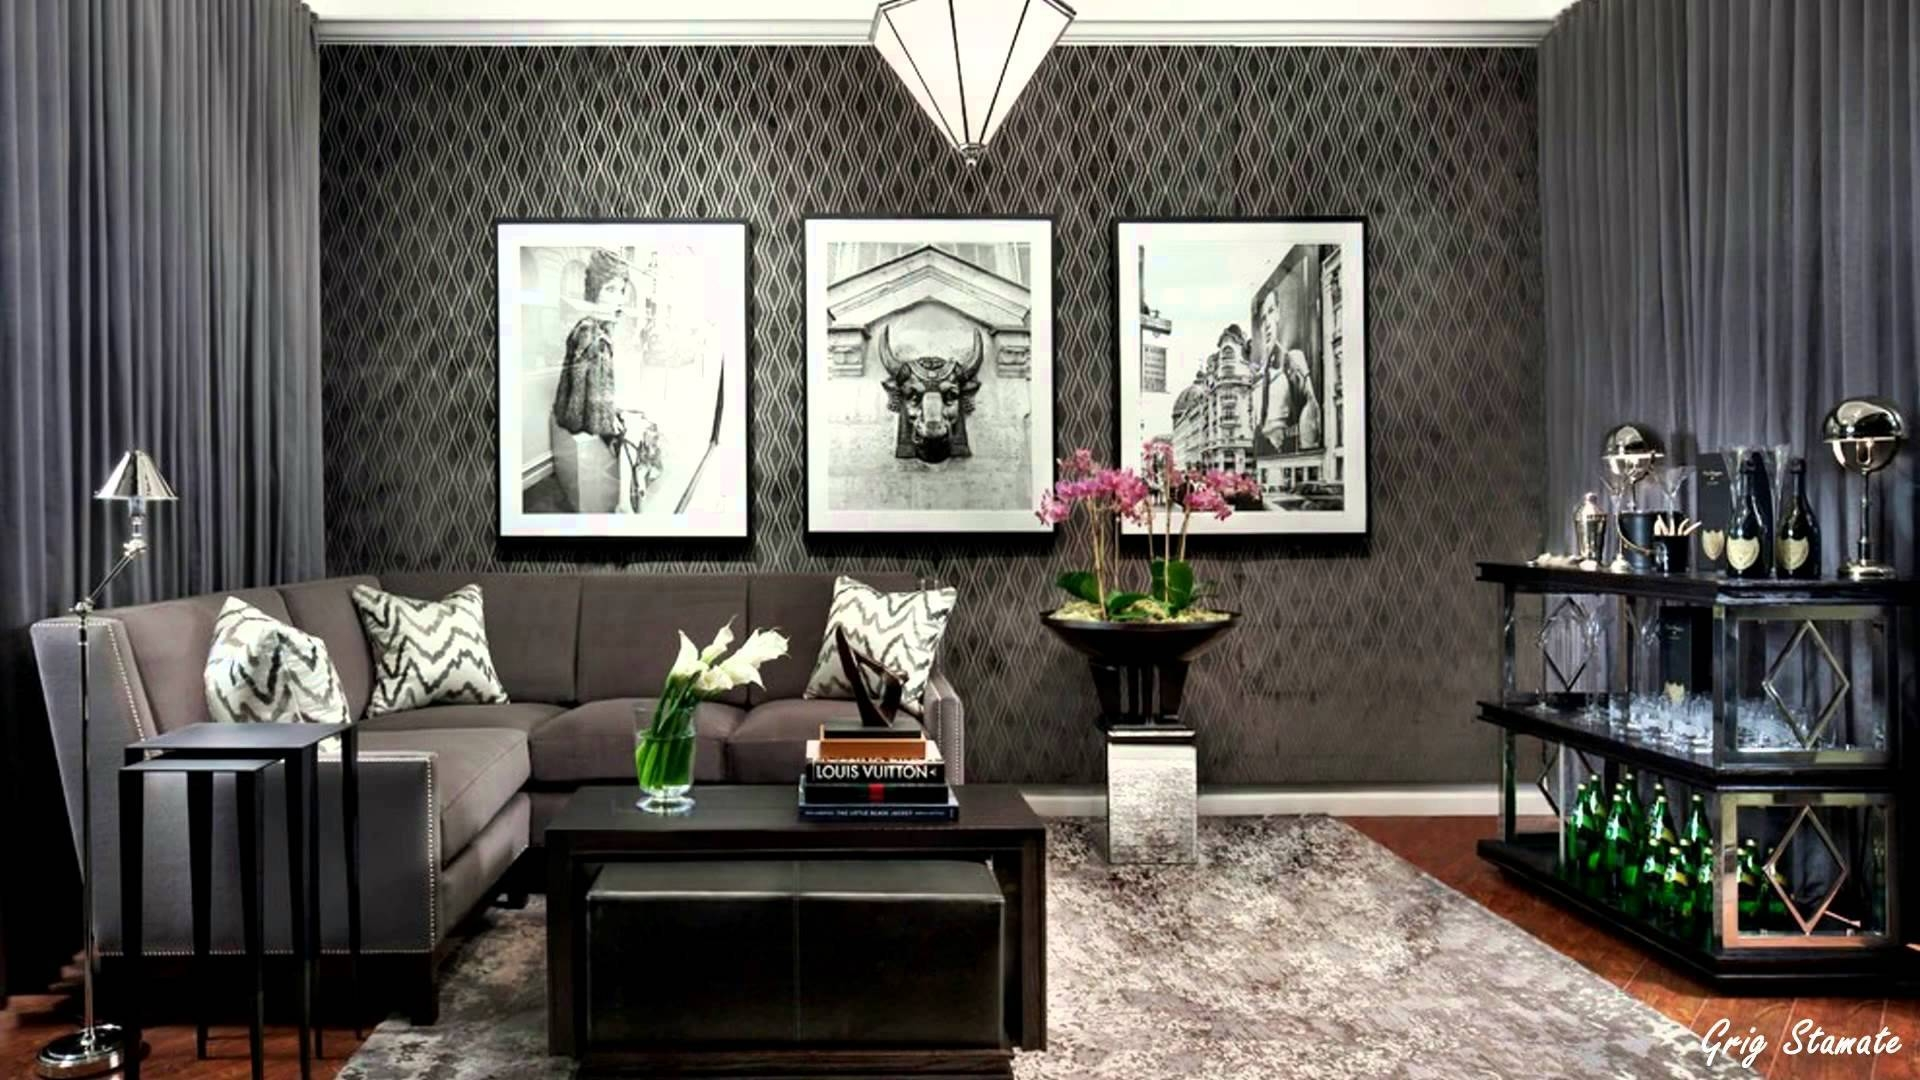 Black And White Wall Art – Stunning, Timeless And Trendy – Youtube With Regard To Most Recently Released Black And White Wall Art (View 7 of 16)